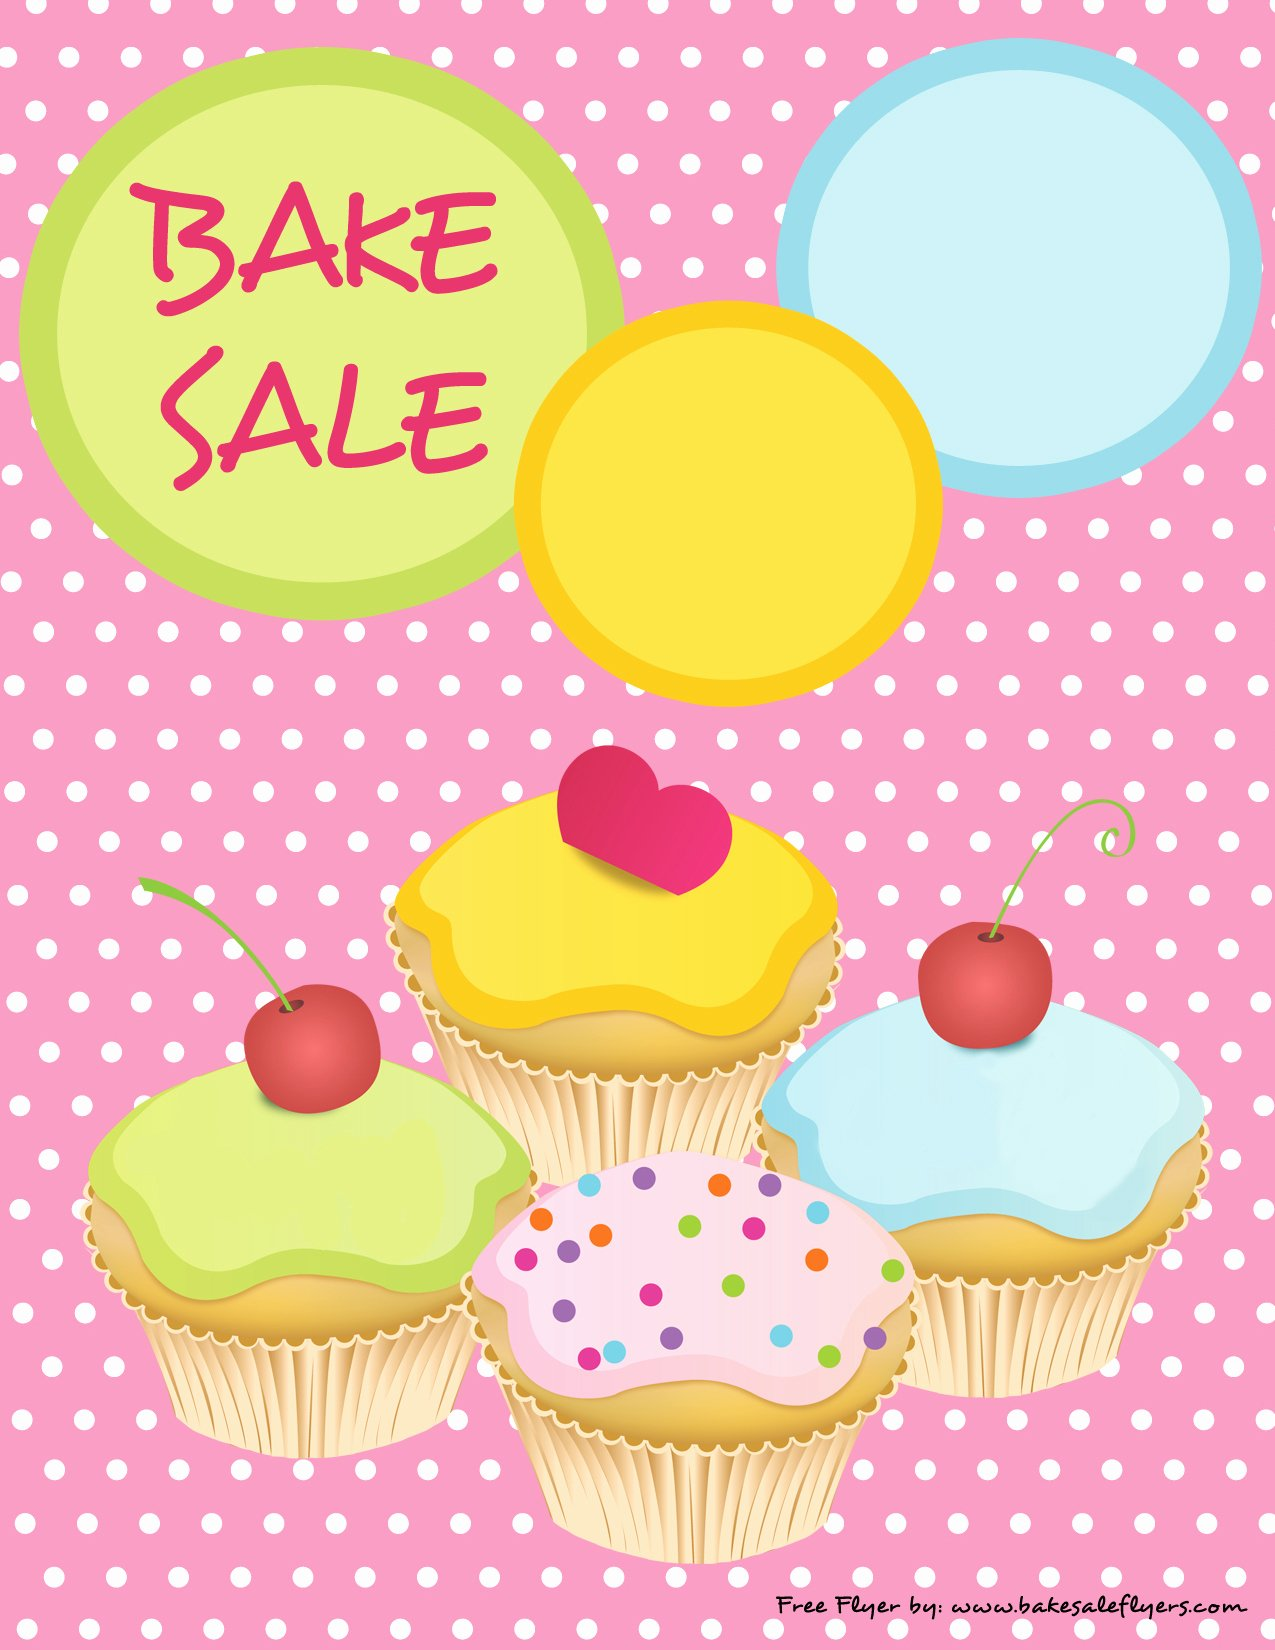 Free Bake Sale Template New Bake Sale Flyers – Free Flyer Designs